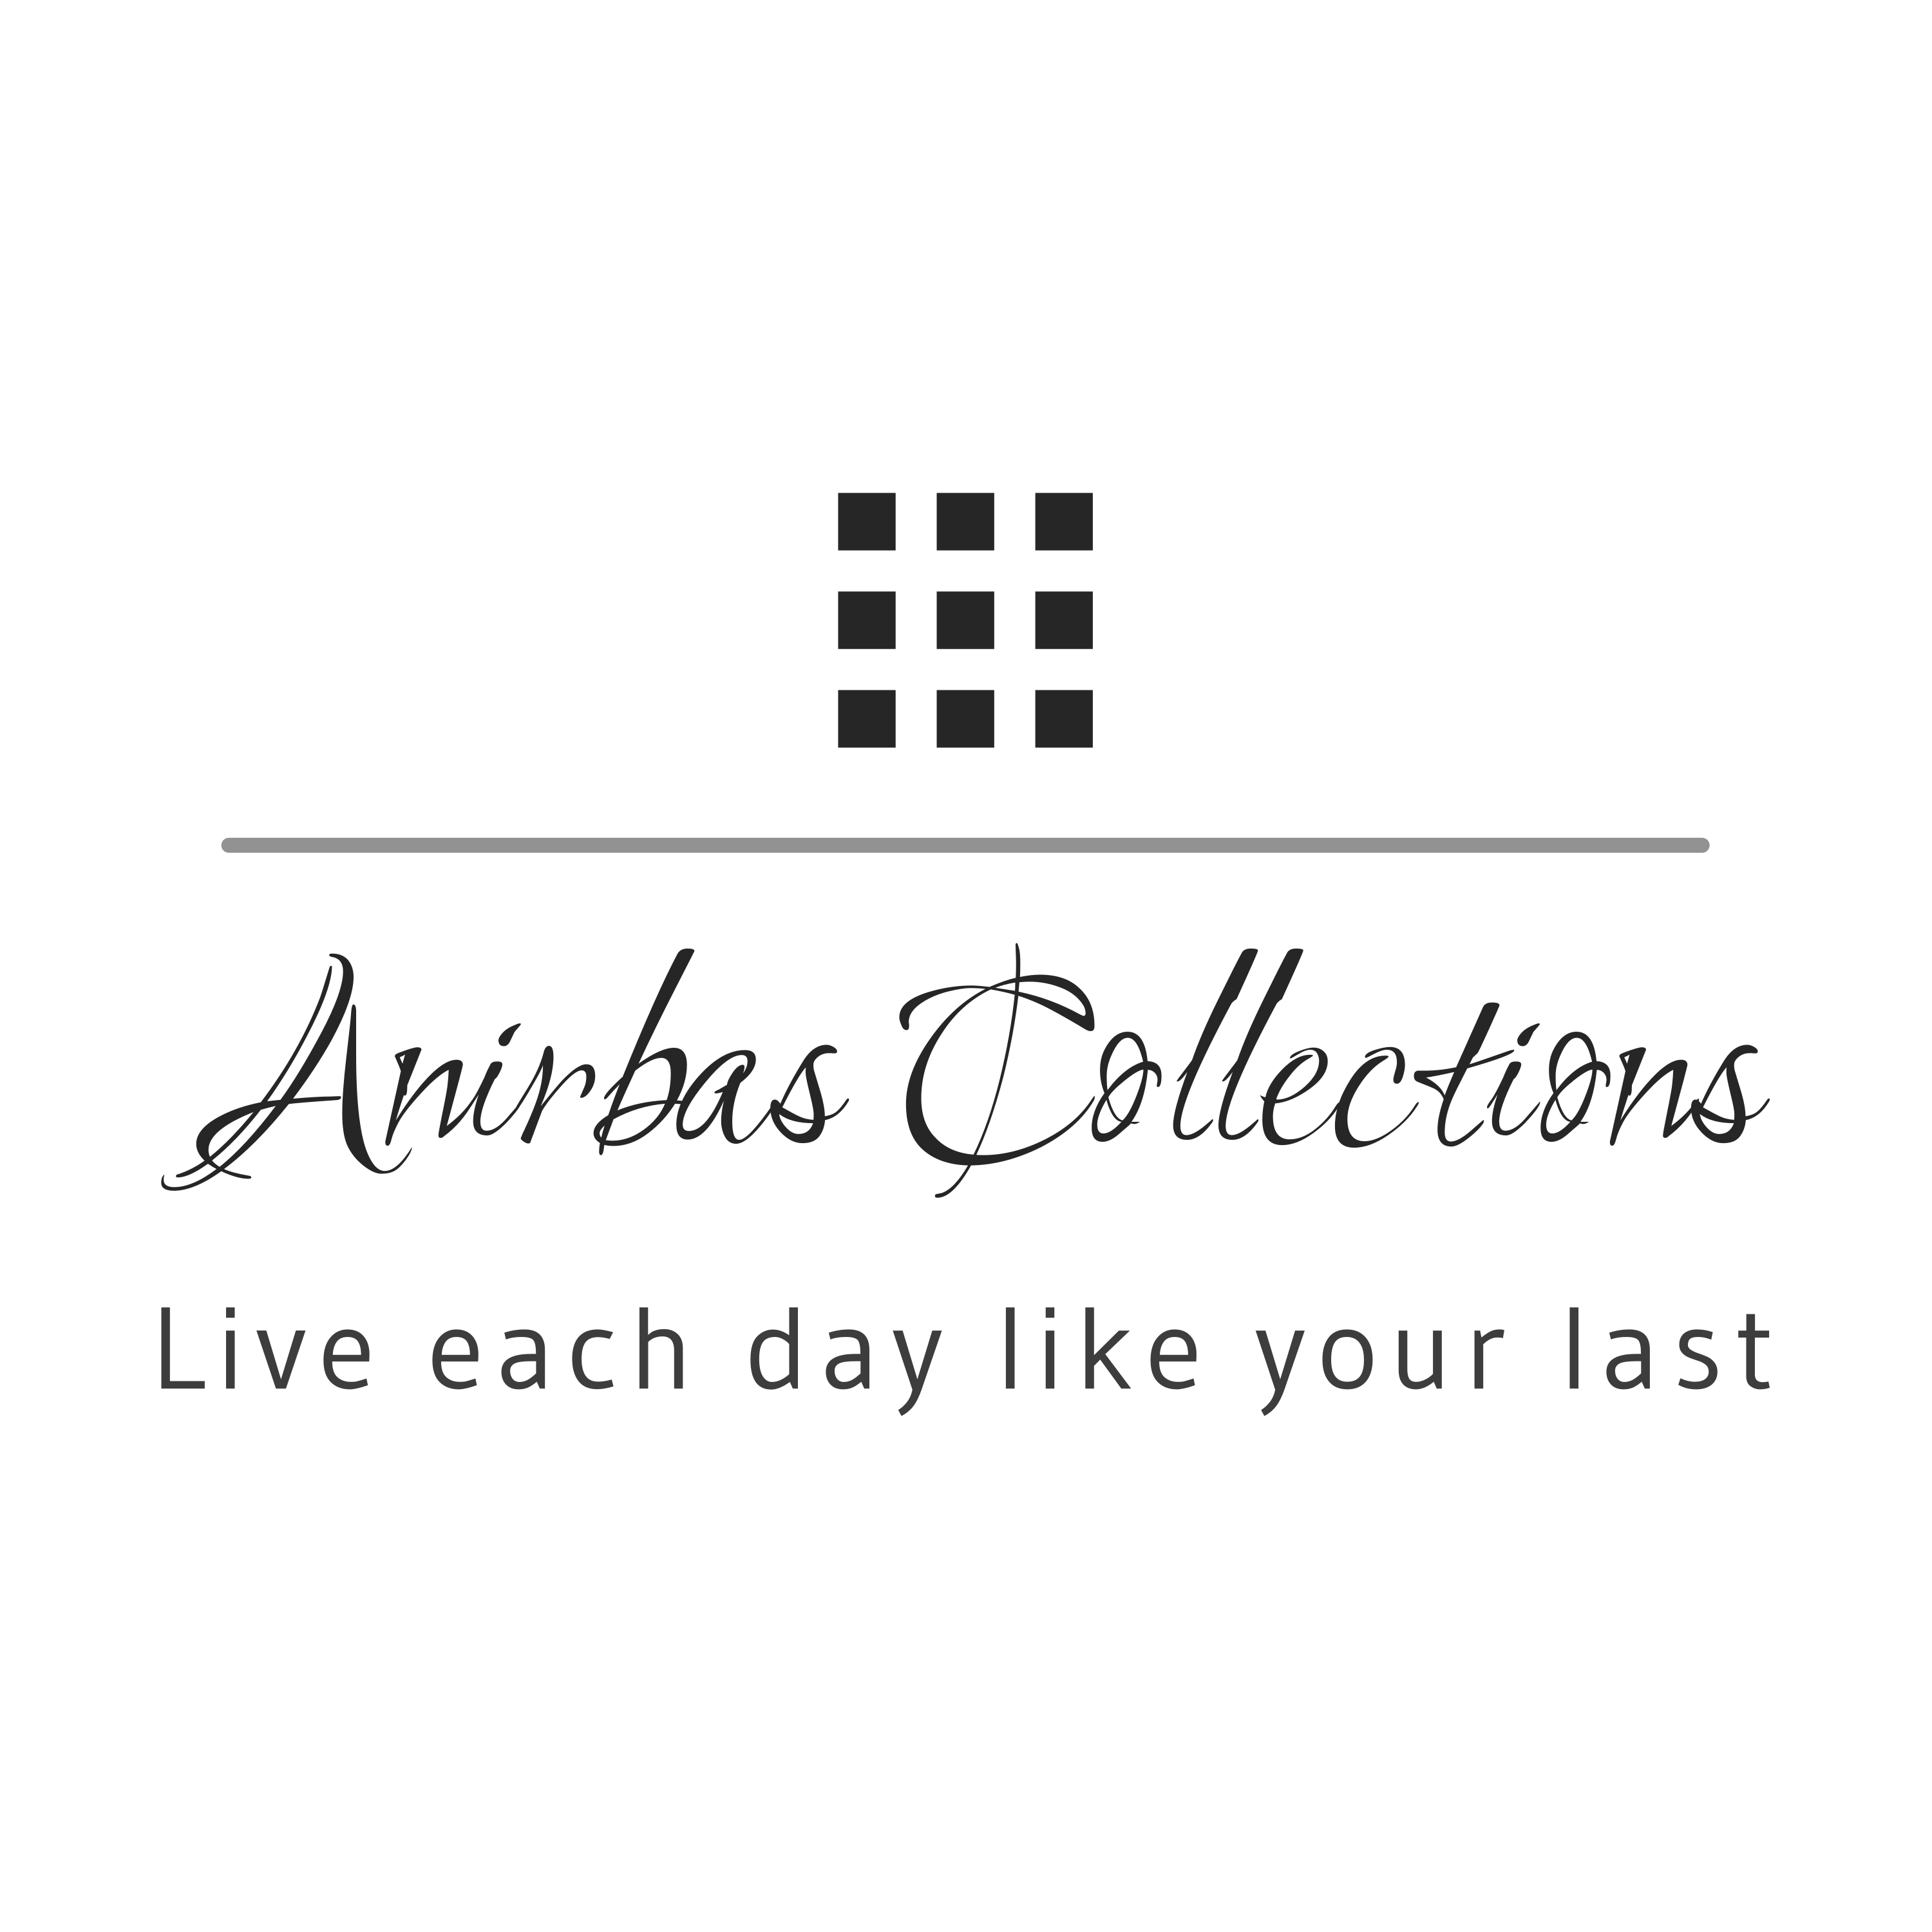 Anirbas Collections